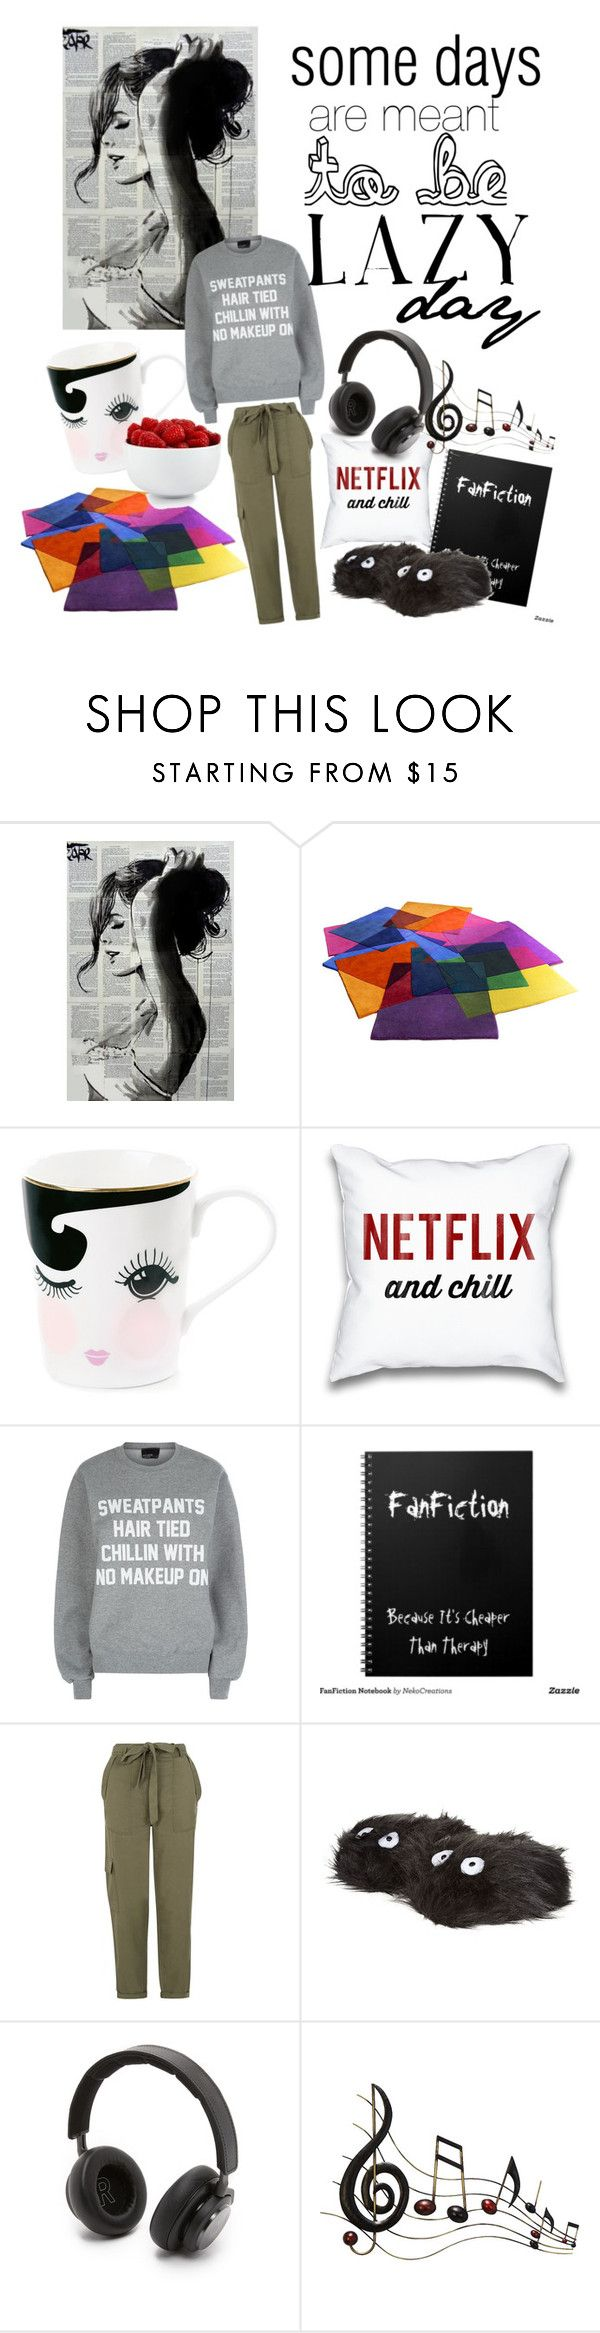 """""""some lazy day"""" by nimas on Polyvore featuring interior, interiors, interior design, home, home decor, interior decorating, Private Party, B&O Play, Benzara and The Cellar"""